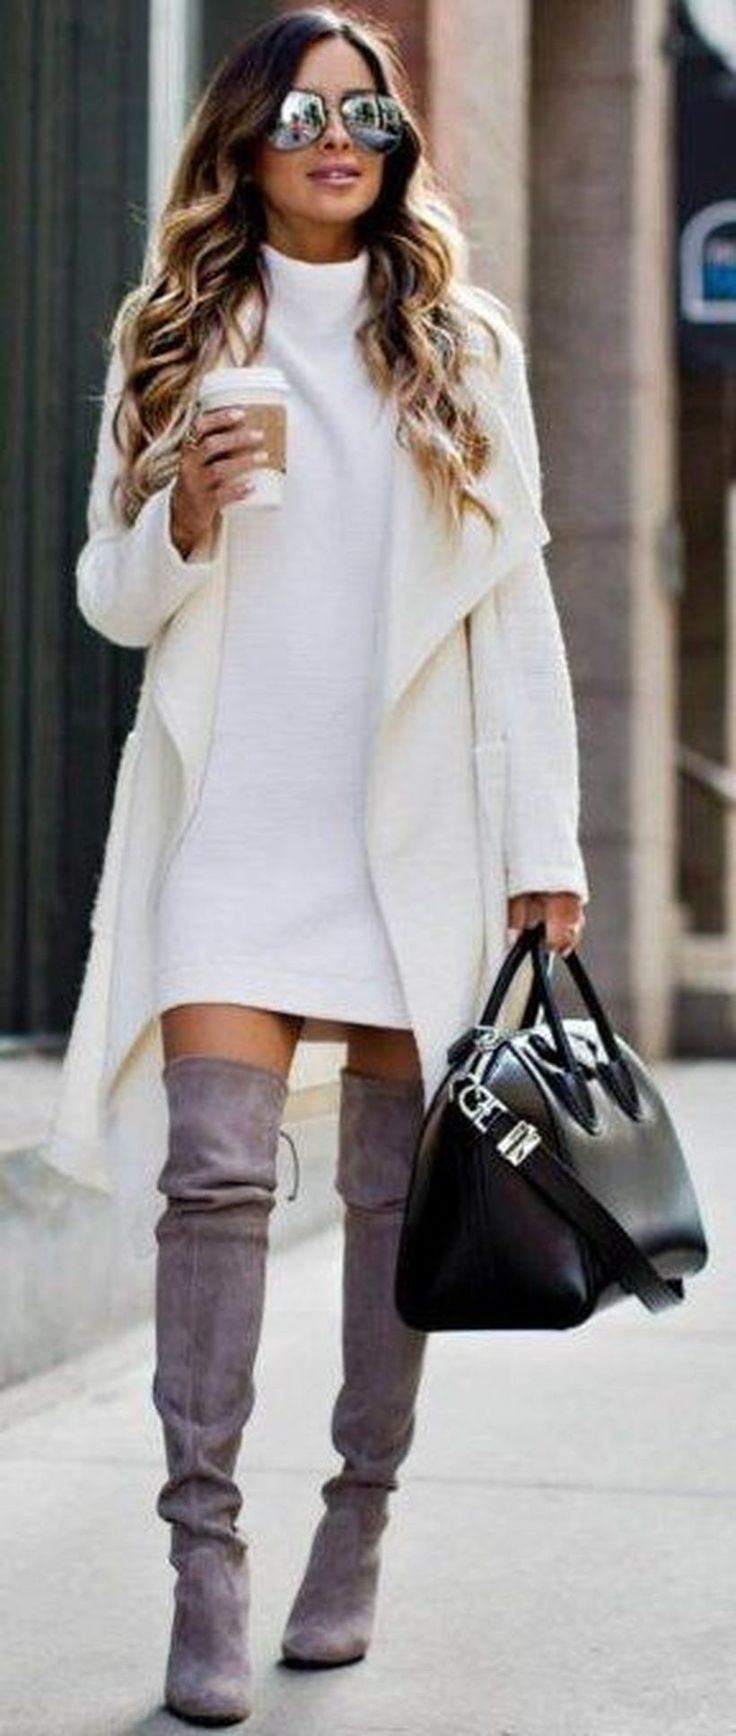 90 Best Casual Fall Night Outfits Ideas for Going Out https://fasbest.com/90-best-casual-fall-night-outfits-ideas-going/